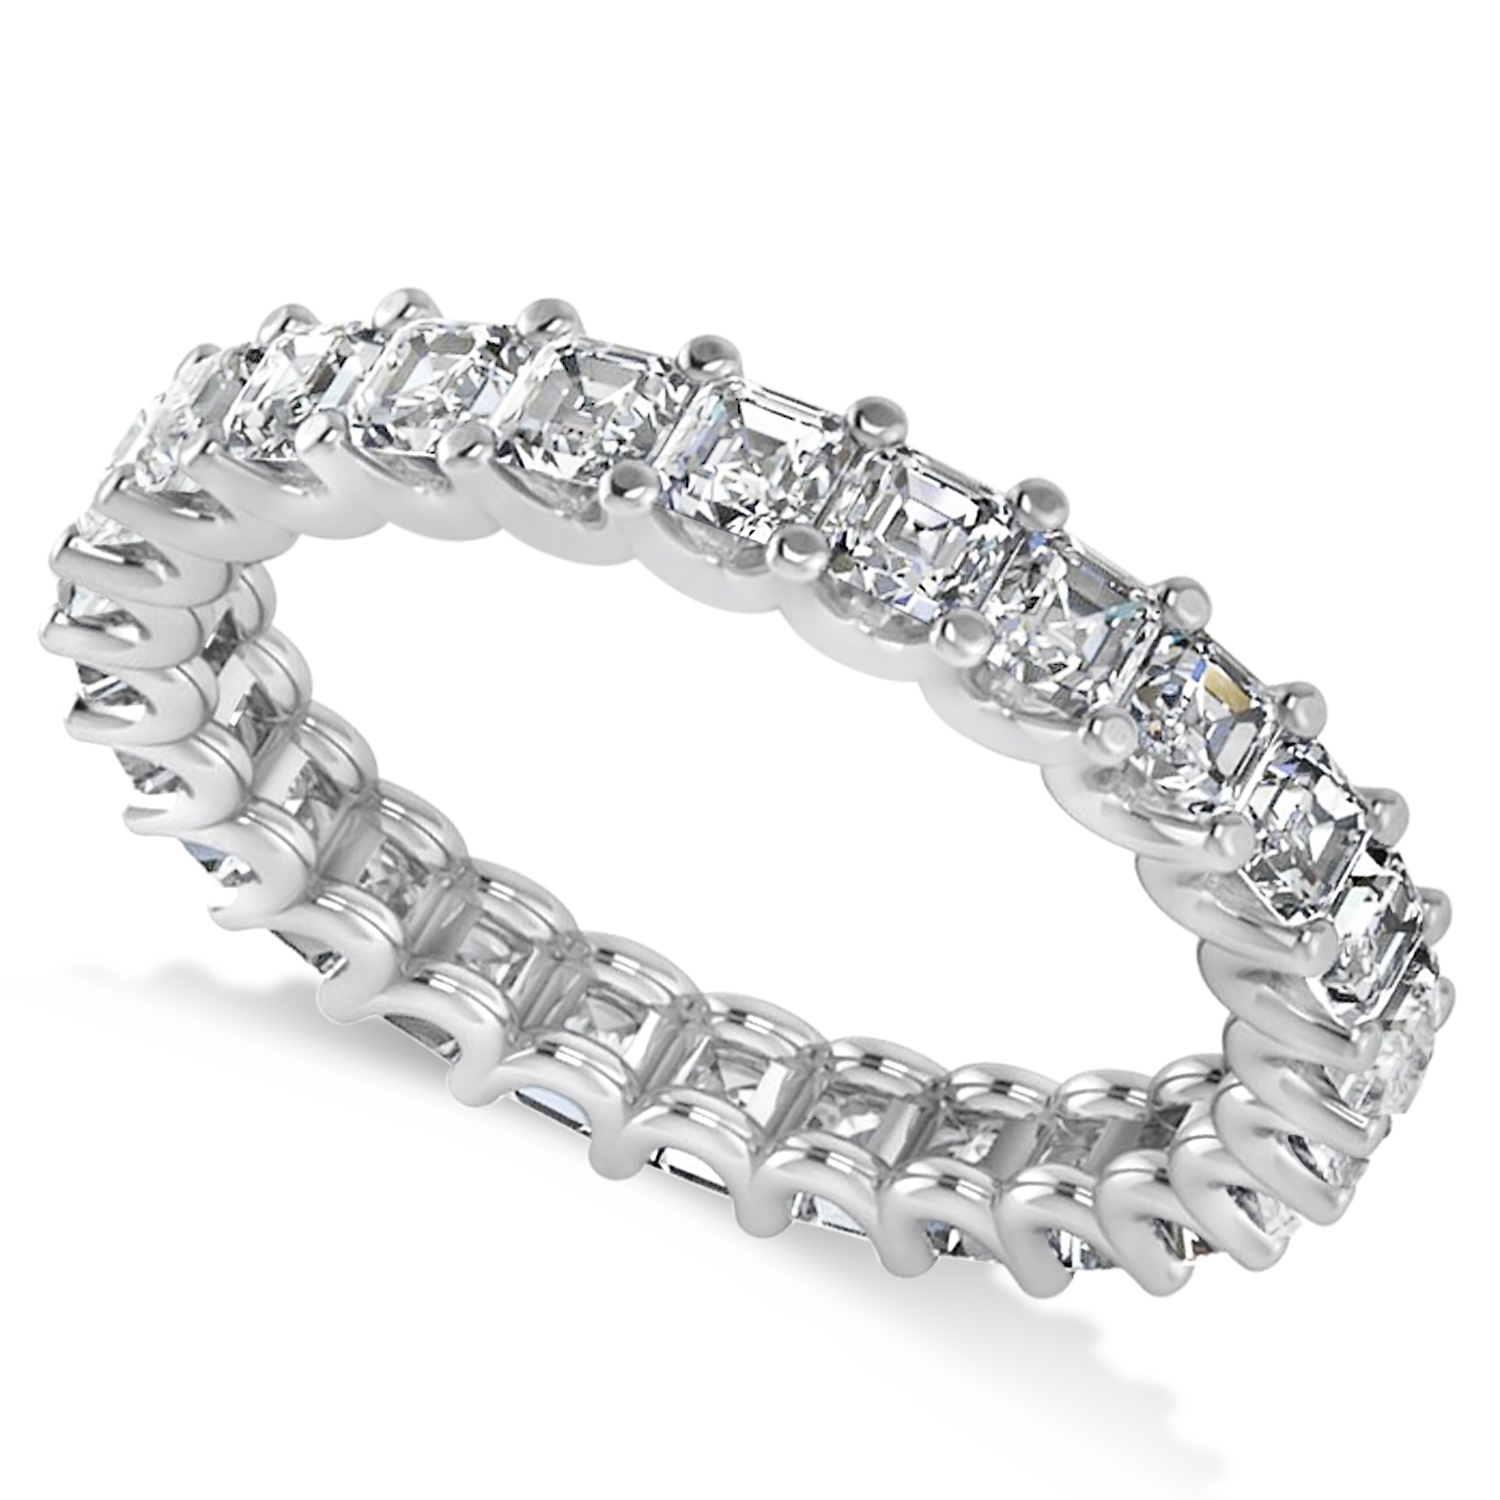 Radiant Cut Diamond Eternity Wedding Band Ring 14K White Gold  (View 13 of 15)